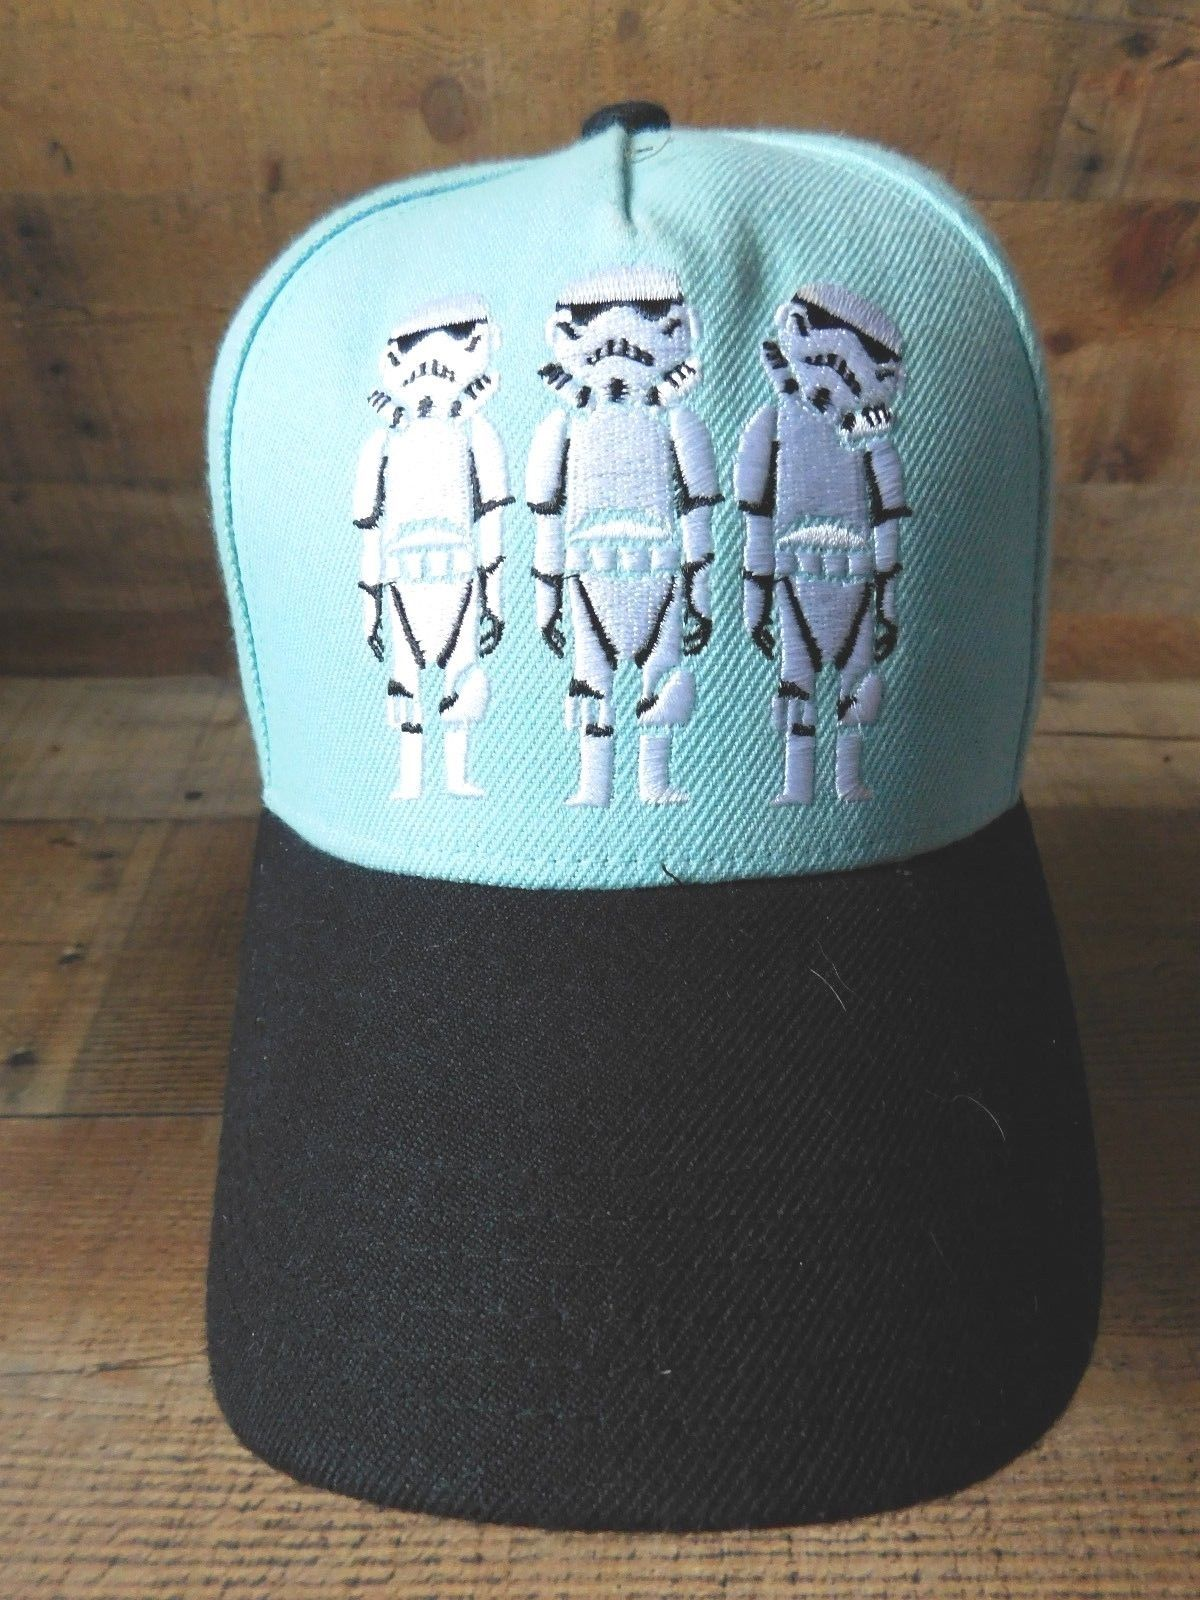 STAR WARS Stormtroopers Snapback Youth Hat Cap